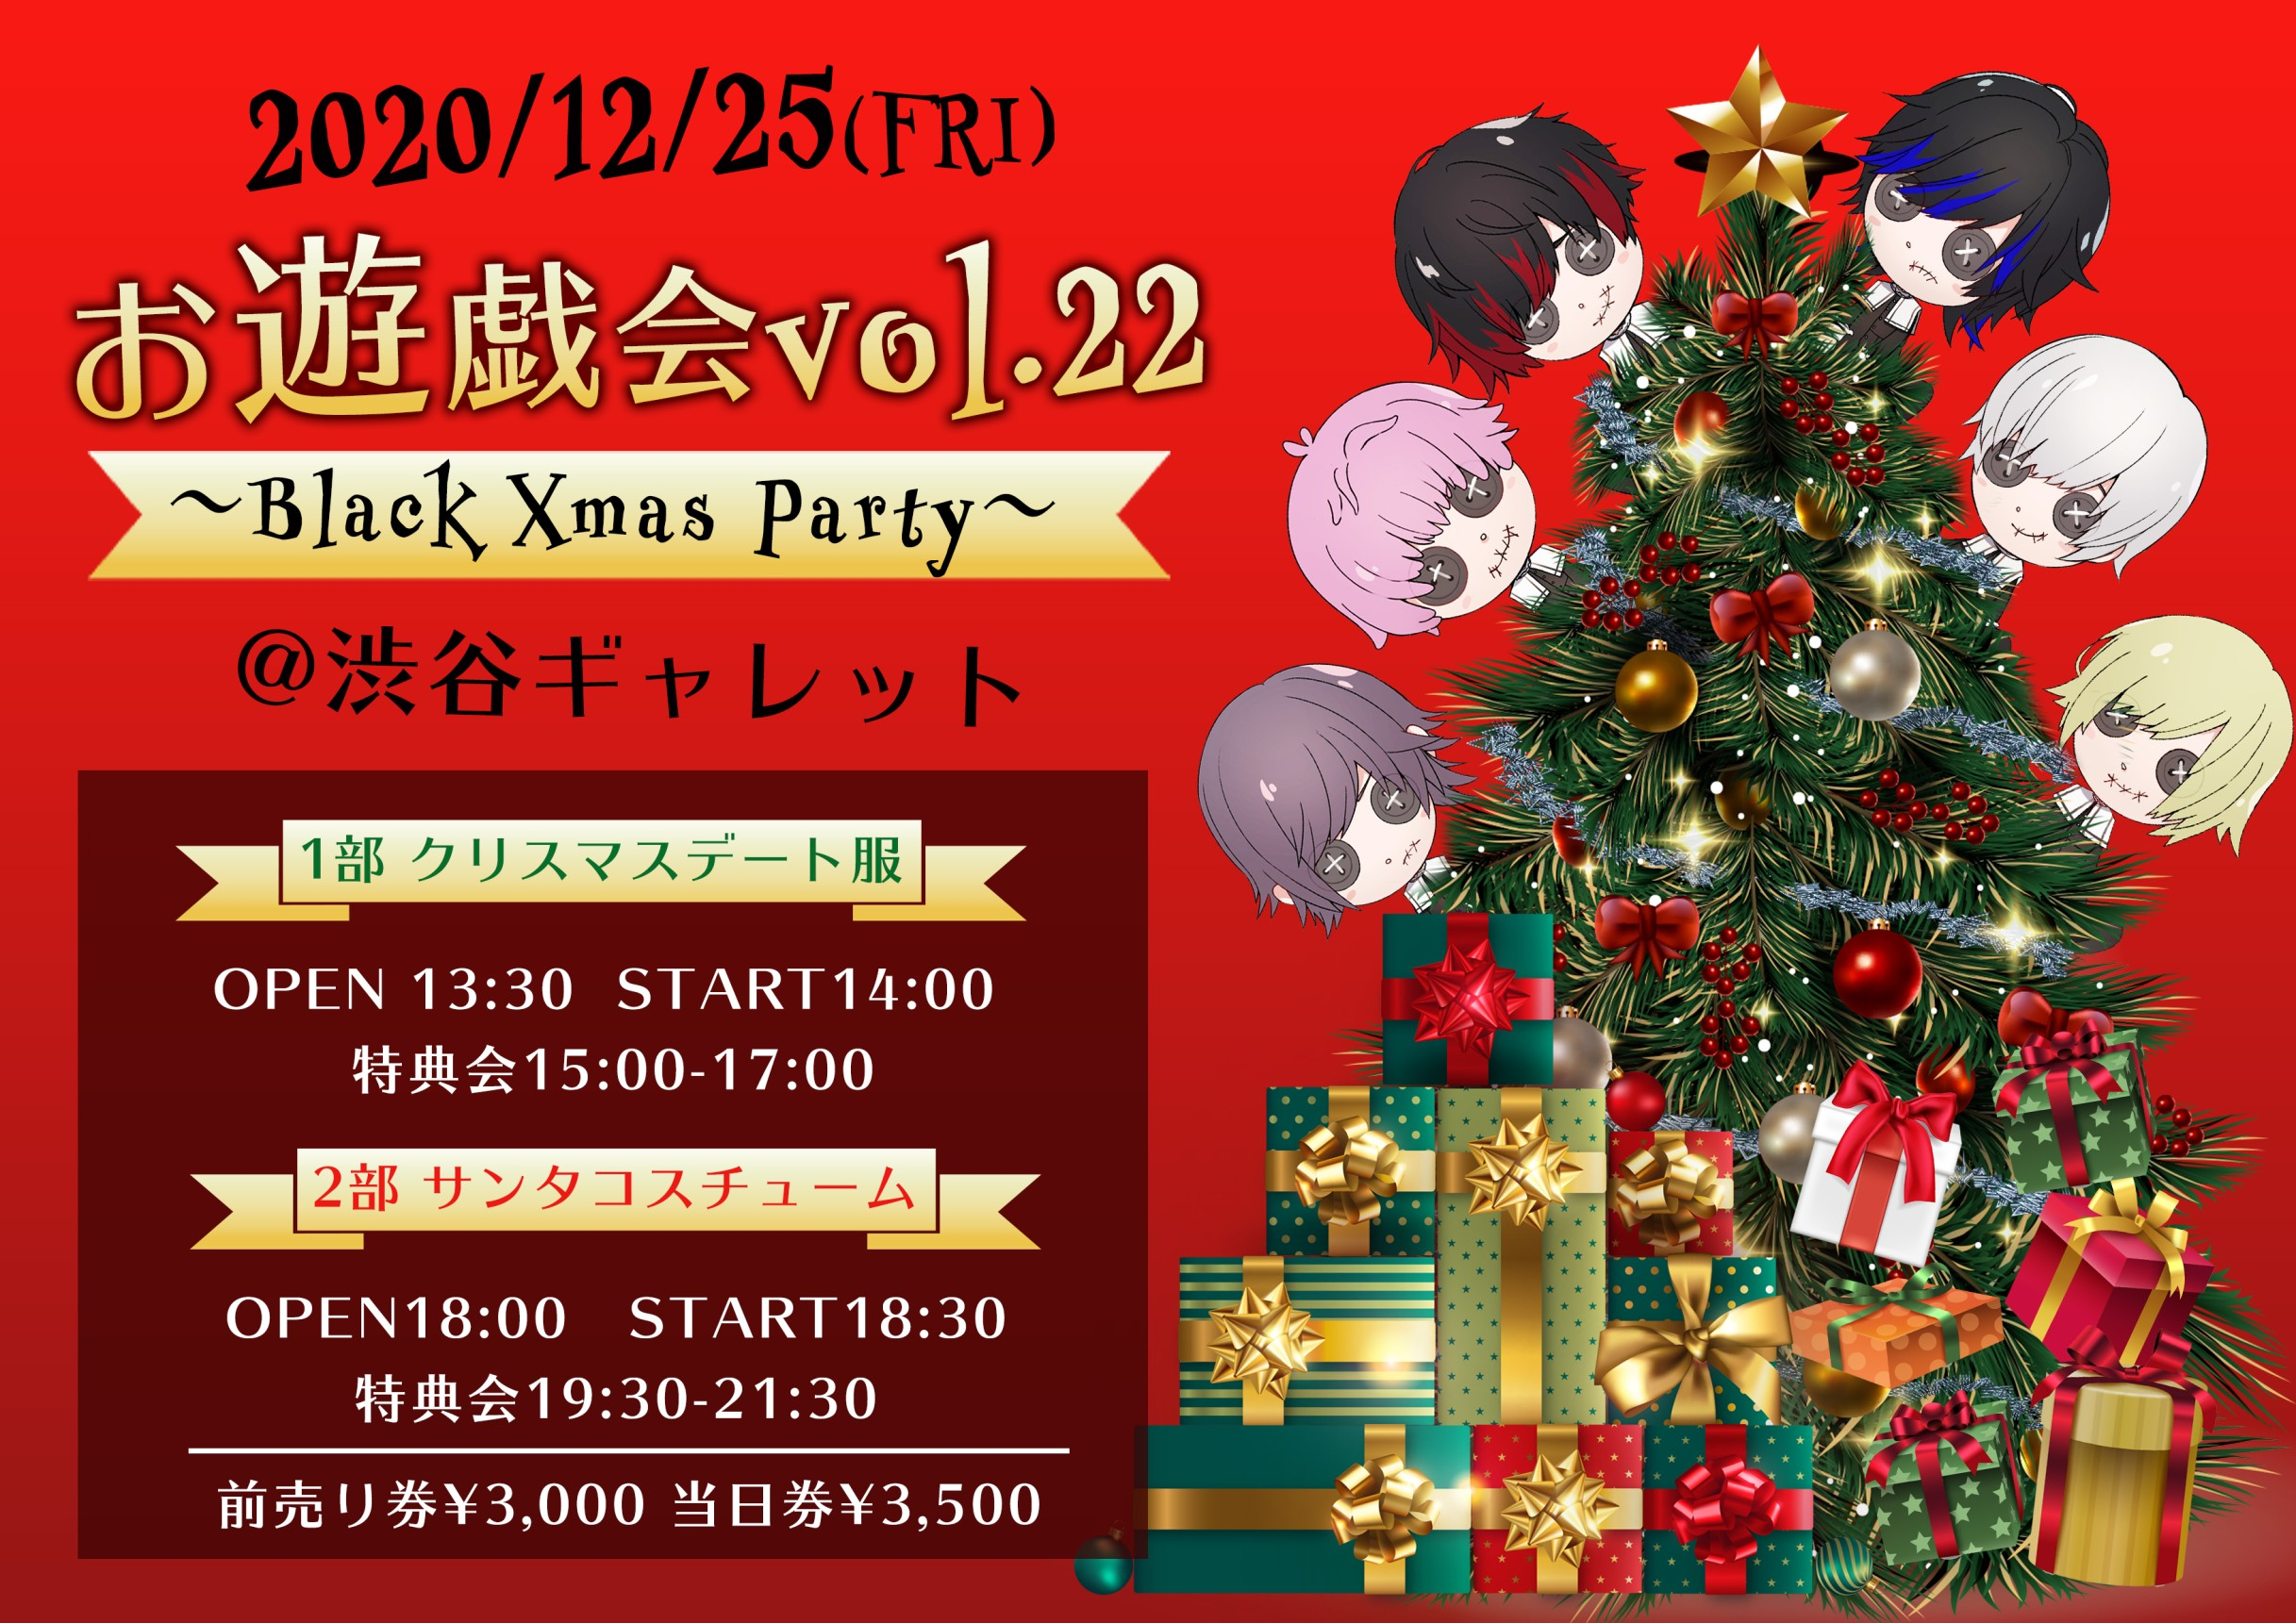 お遊戯会vol.22〜Black Xmas Party〜【1部】